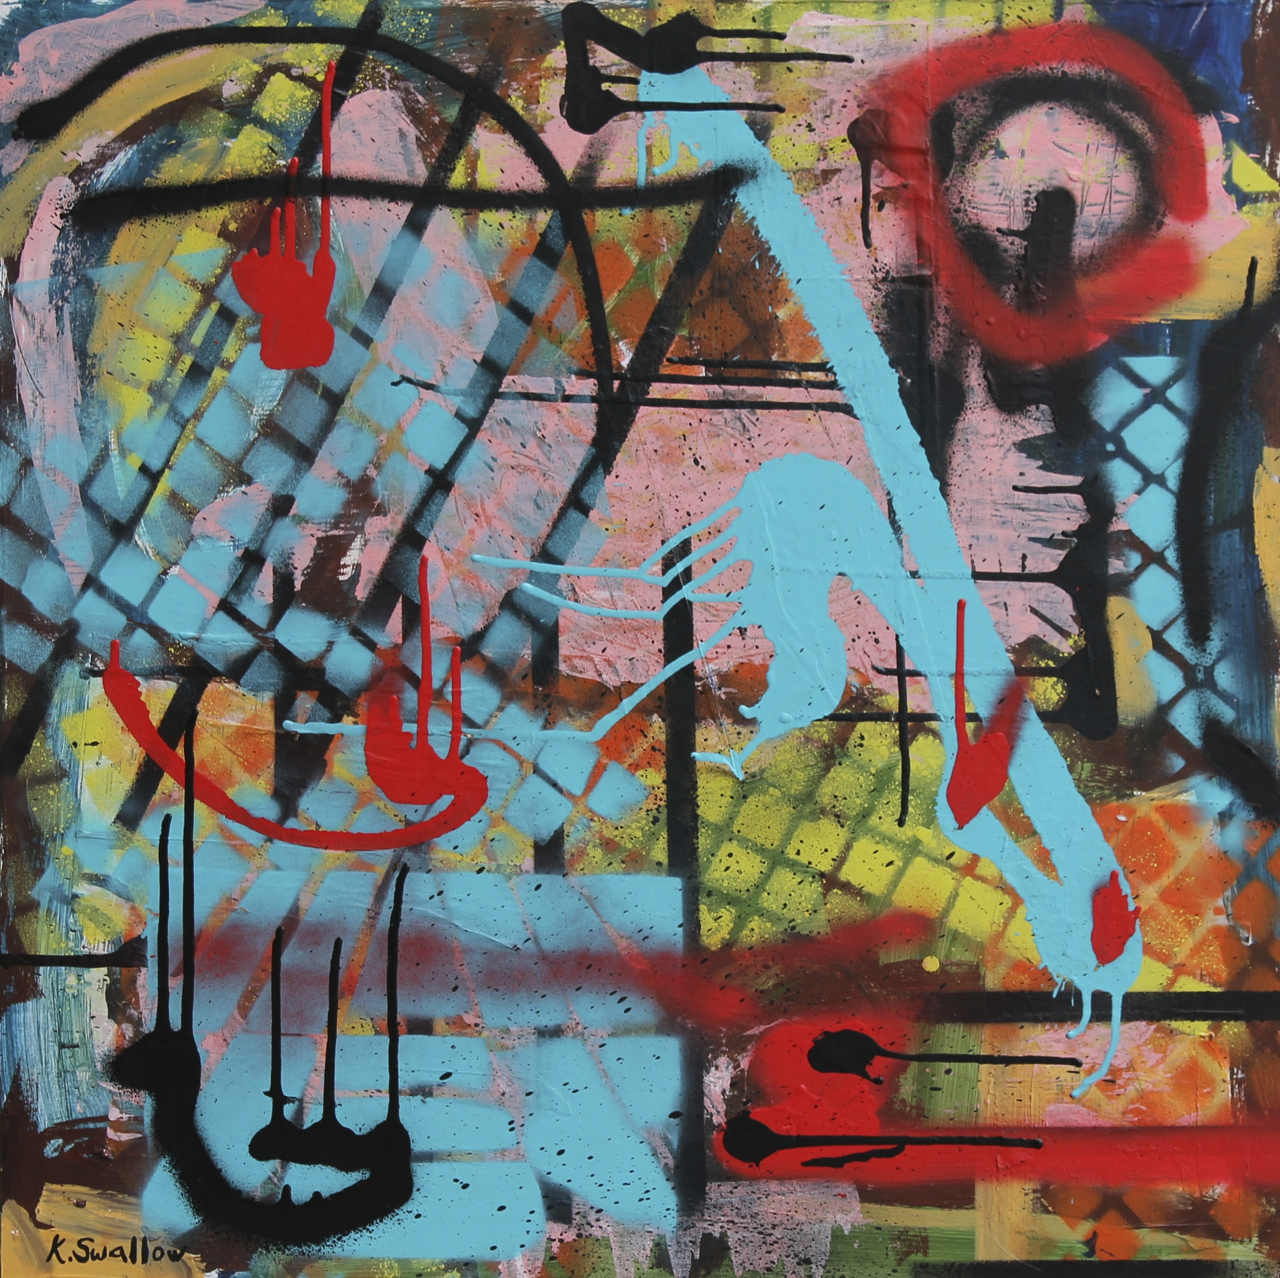 Intersections, acrylic, spray paint, collage on panel, 24x24, 2013, $400